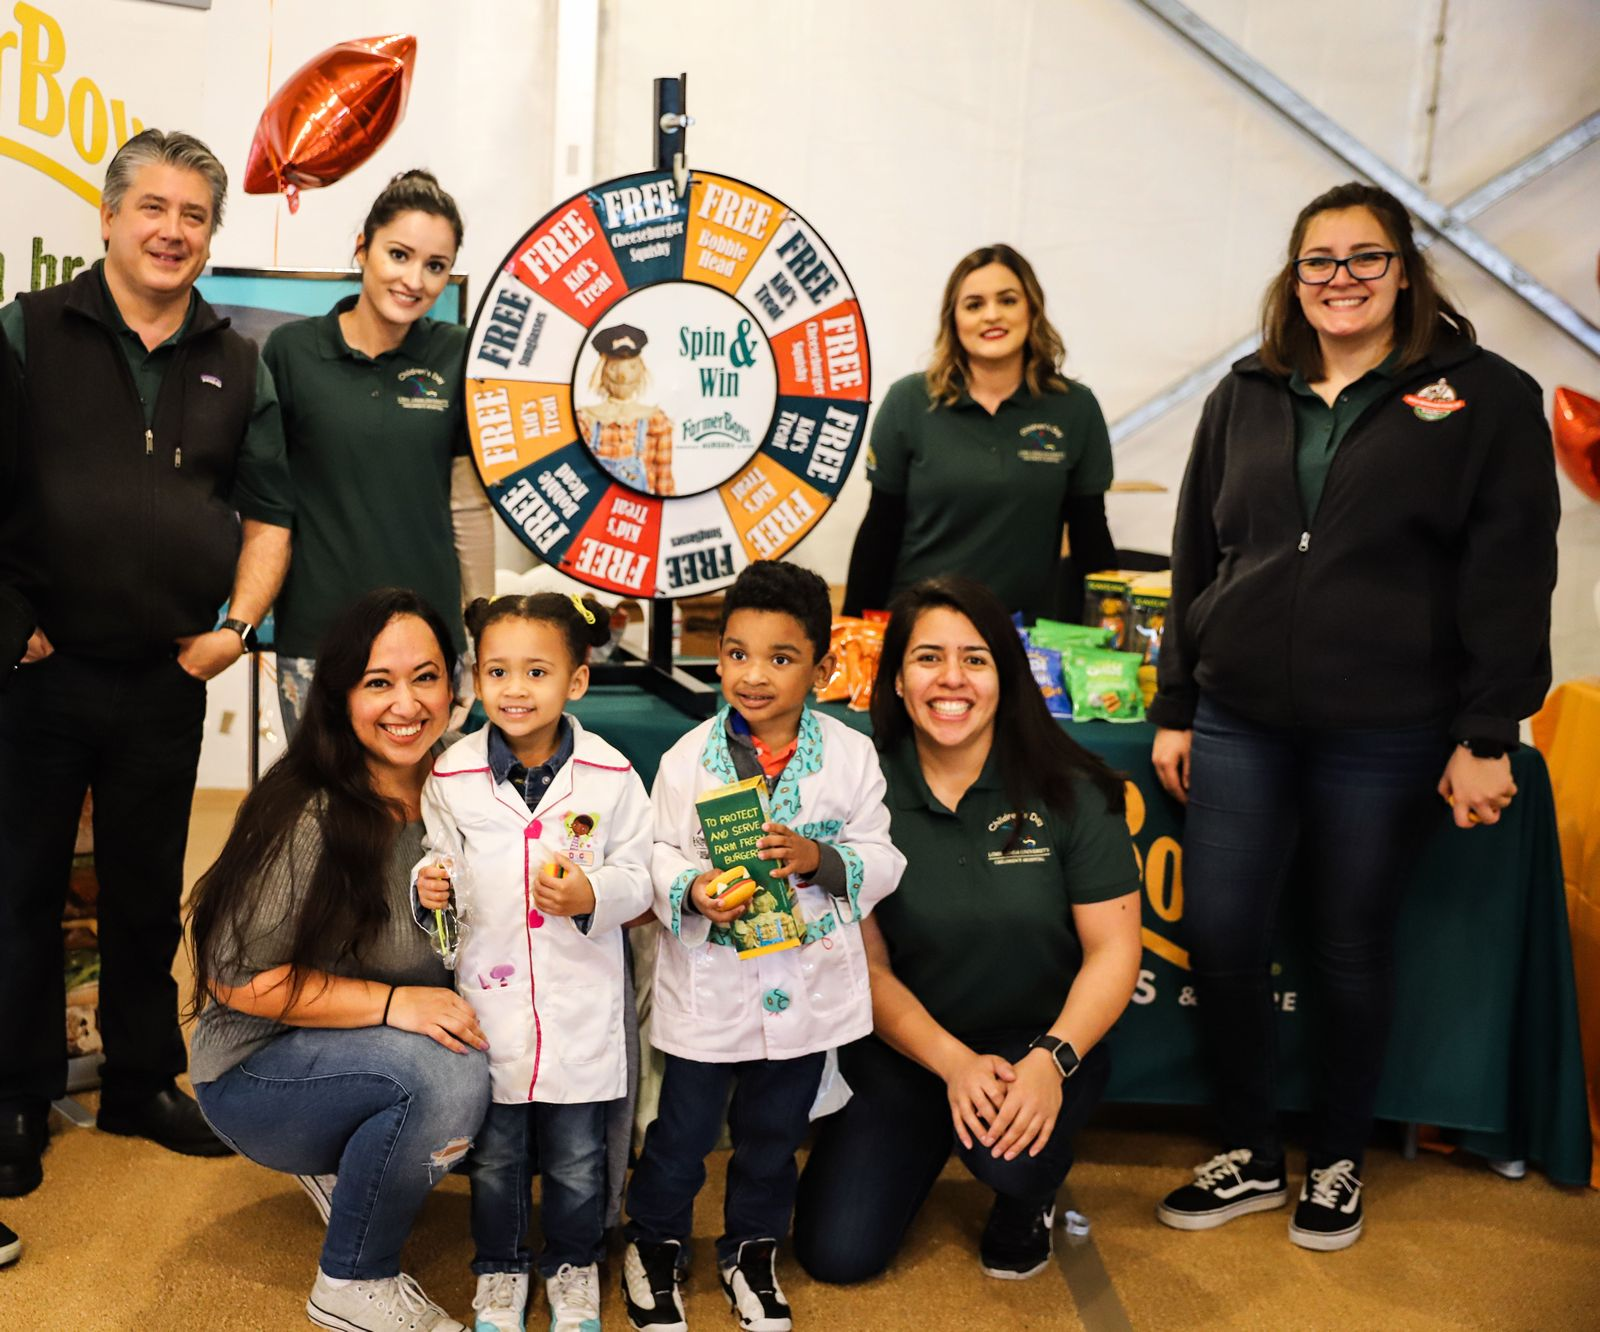 As part of the 20th annual fundraiser for Loma Linda University Children's Health (LLUCH), Farmer Boys has raised $100,000 that will be going towards helping children and caregivers who were directly impacted by the COVID-19 pandemic.